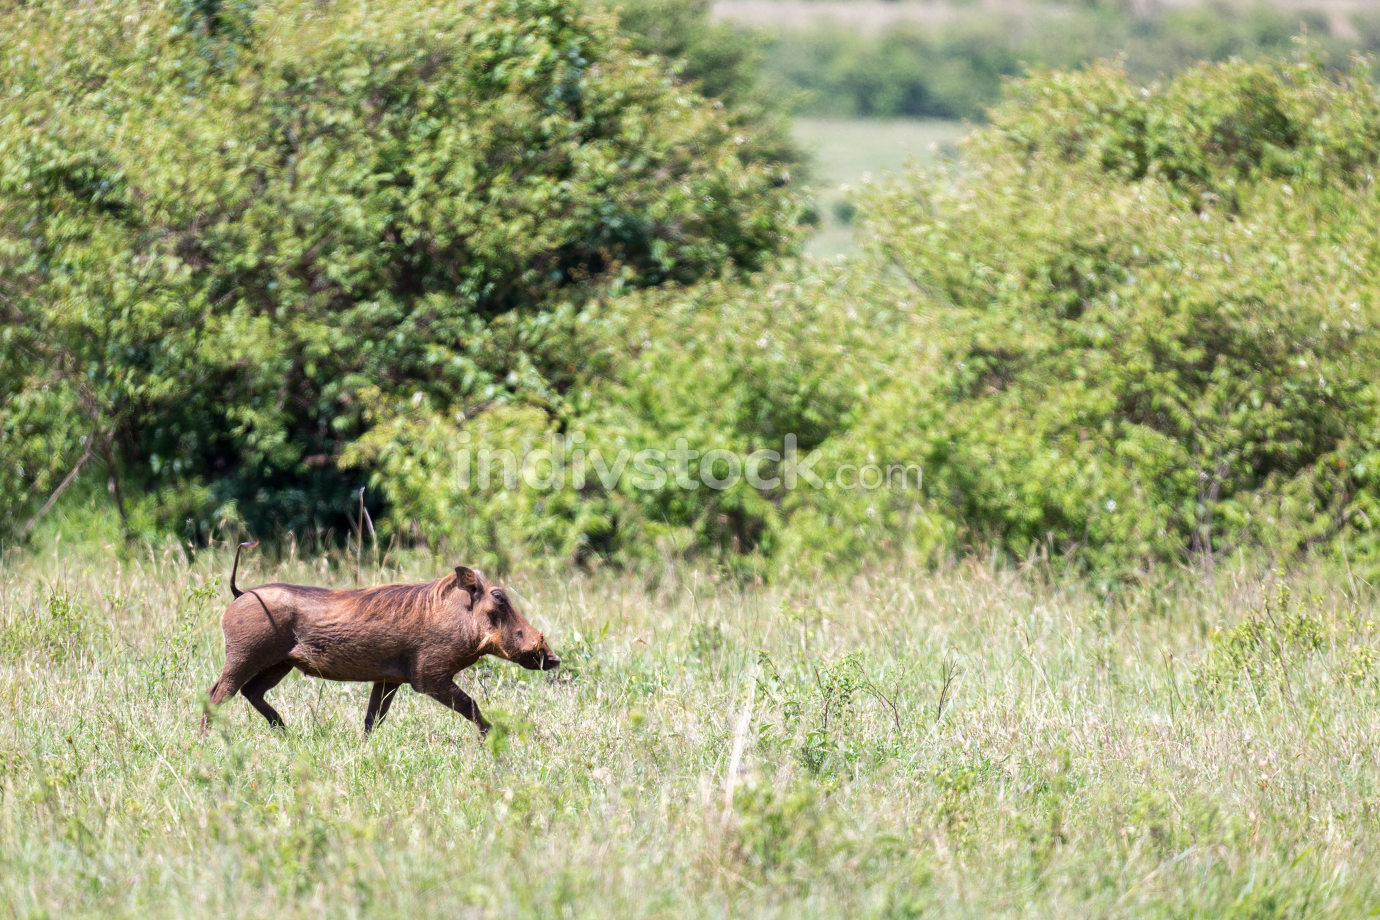 A warthog in the middle of the savanna of Kenya